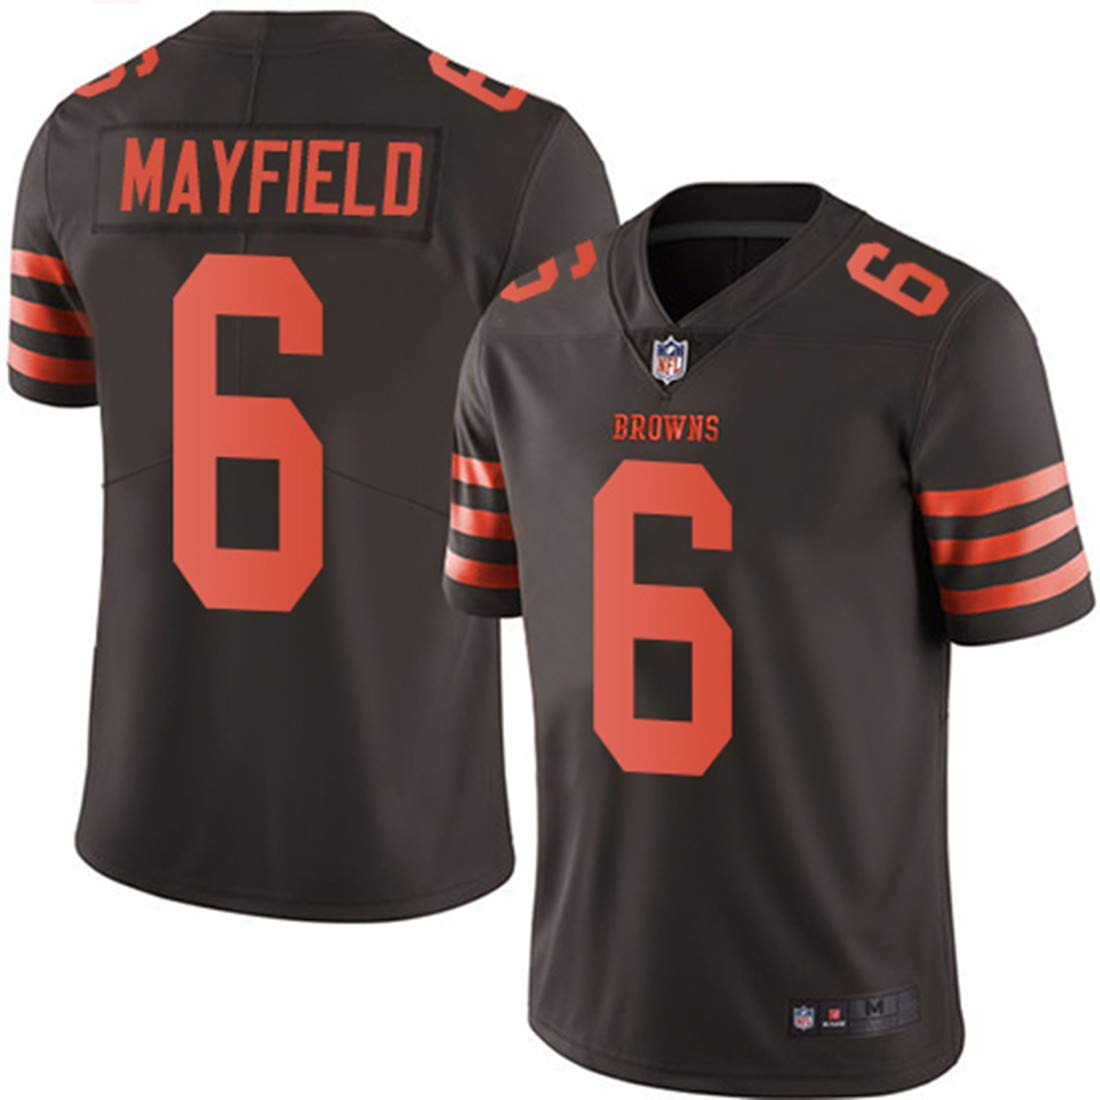 pretty nice 33aae d35e3 Men's Cleveland Browns #6 Baker Mayfield Brown Embroidered Name & Number  Jersey